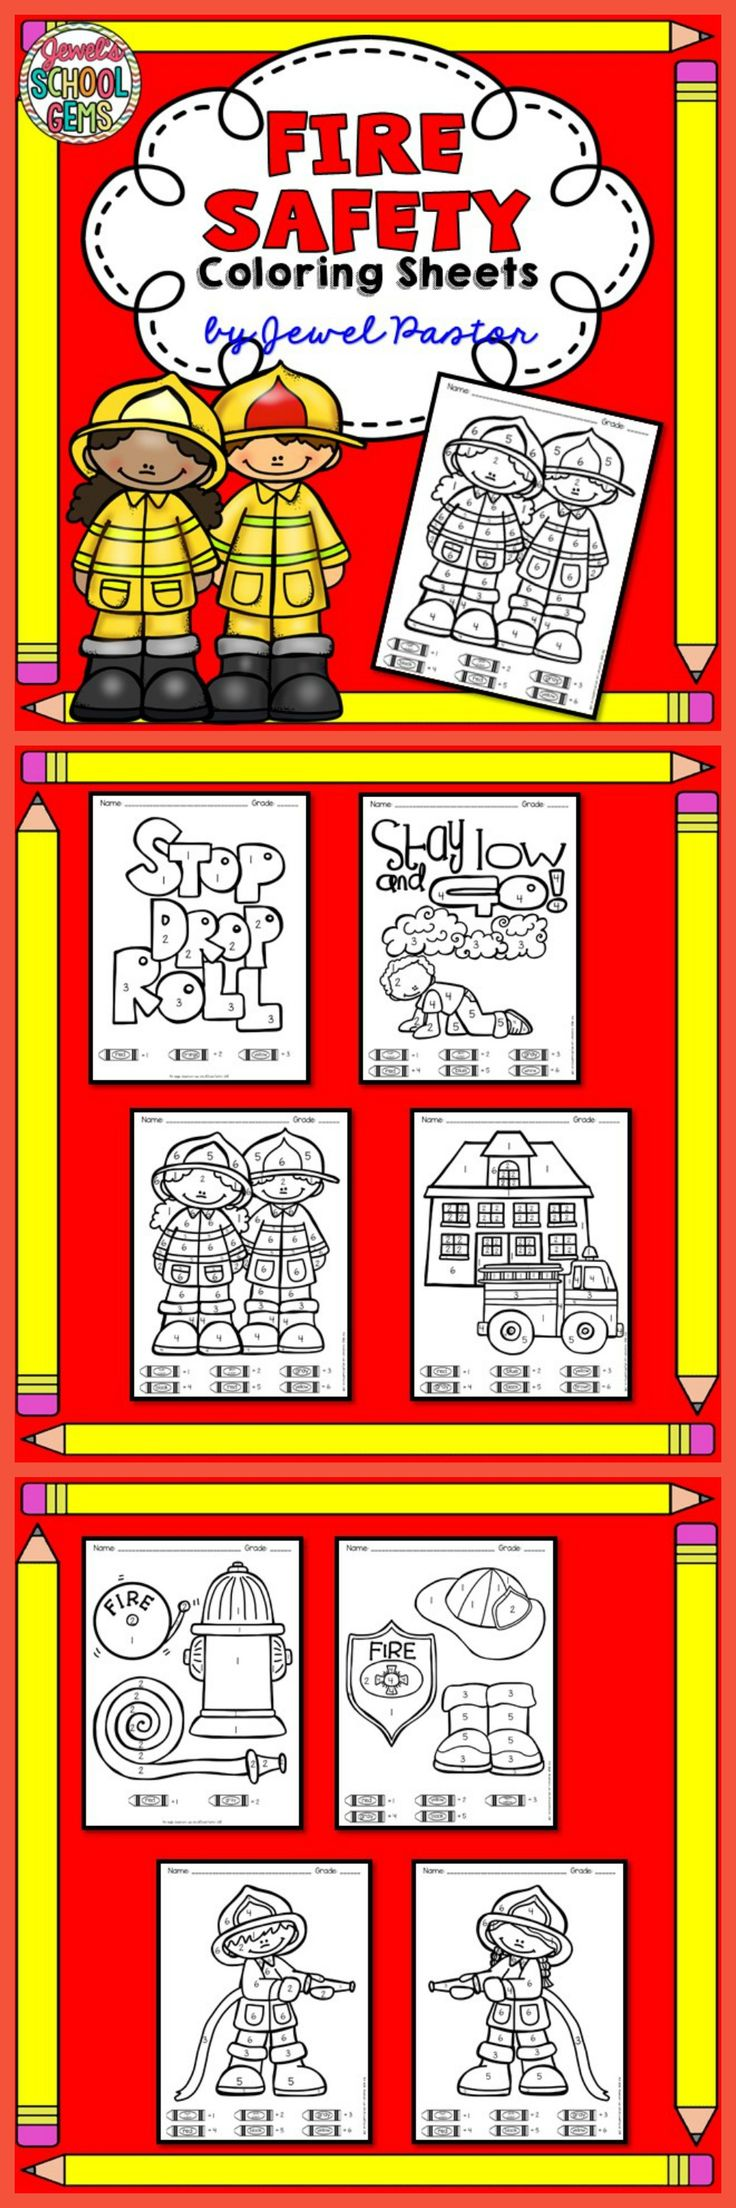 "Fire Safety  ""Fire Safety Coloring Sheets"" is the perfect activity for your students this Fire Safety Week. Just print the sheets and you are ready to go! Please see Preview to see all 8 sheets you are getting."